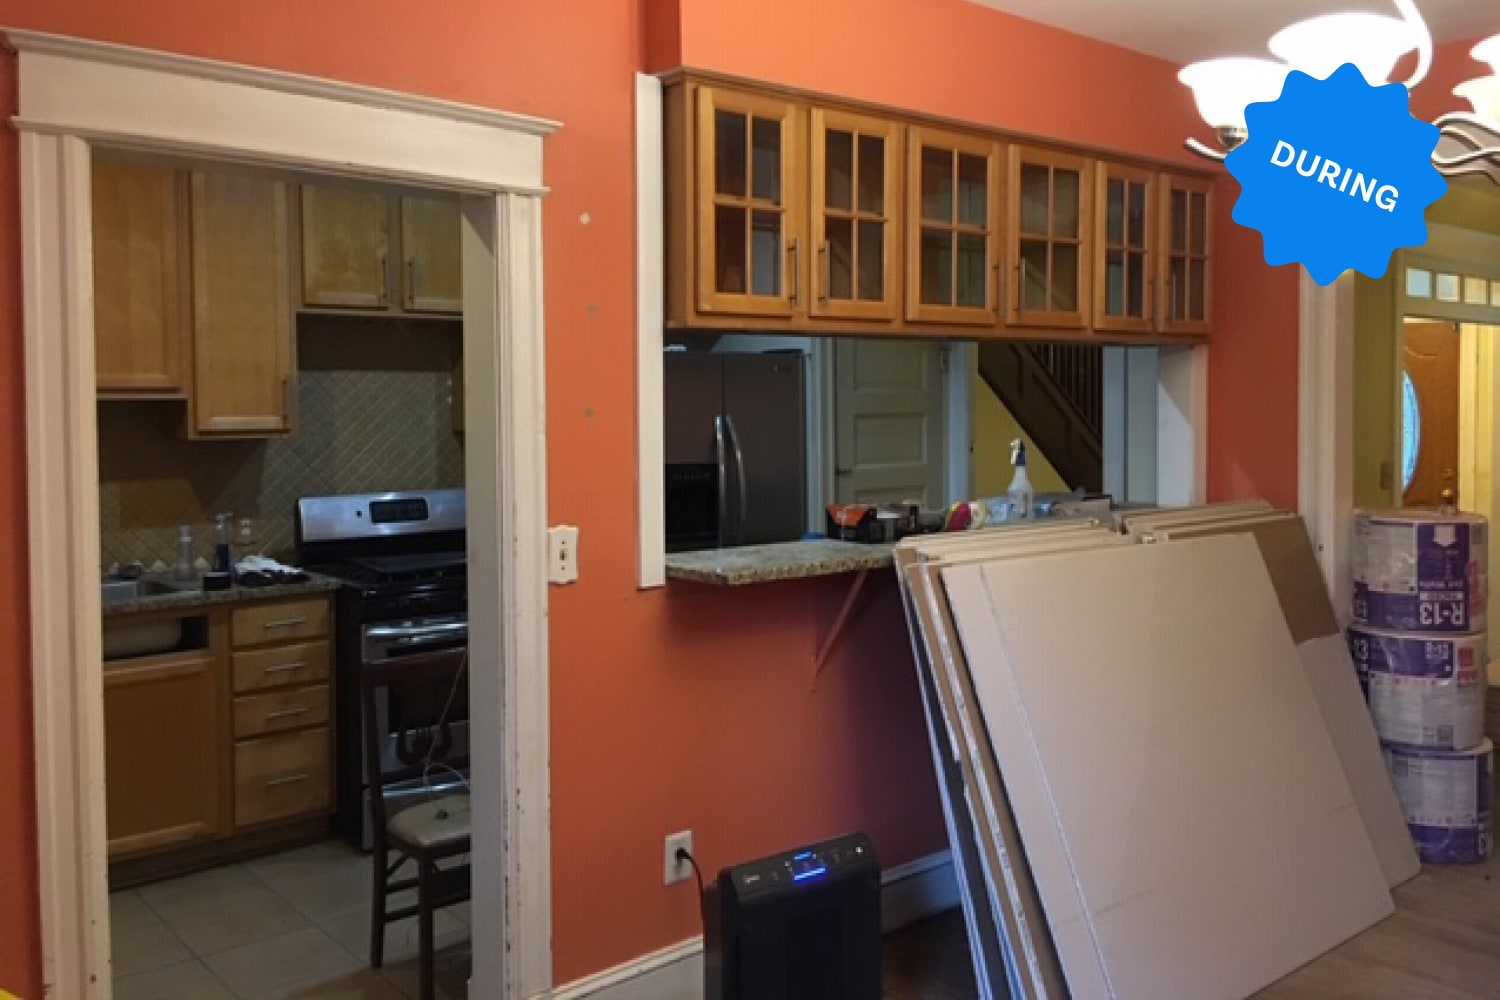 Before & After: This 100-Year-Old House Gets a New Kitchen with an Open Concept and Stunning Cabinets